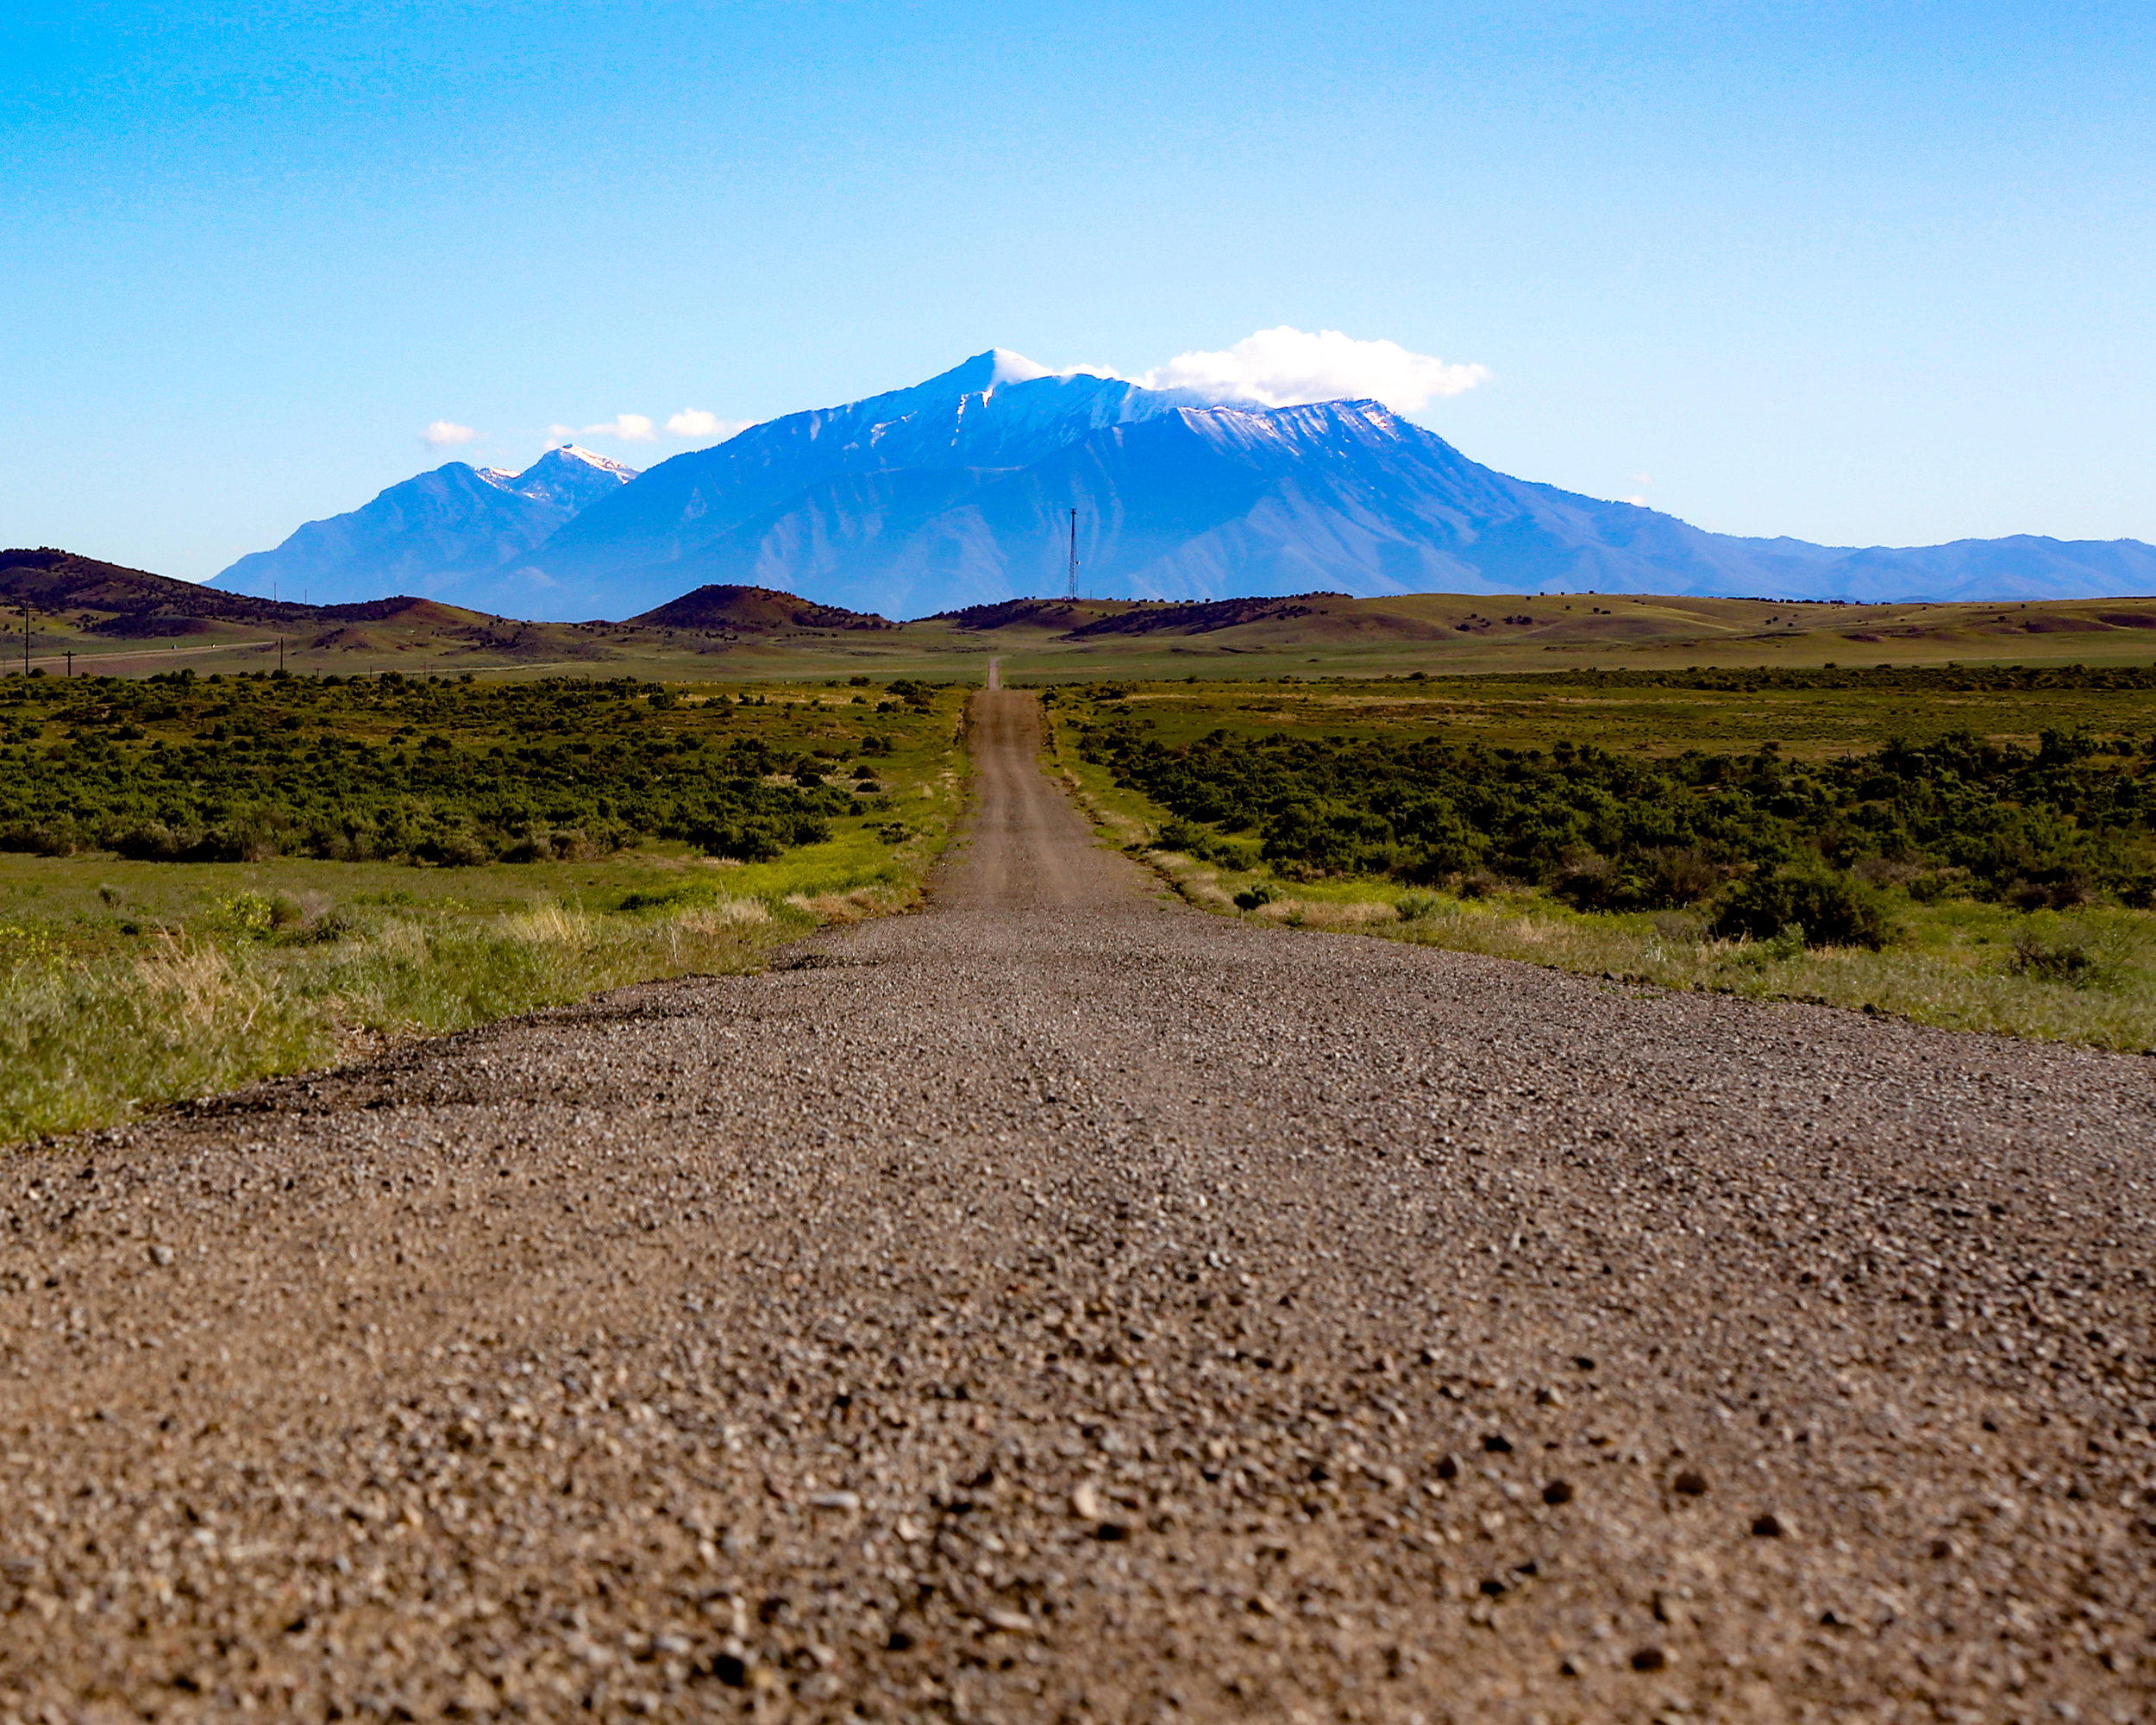 The landscape becomes more arid and mountainous as you travel south.